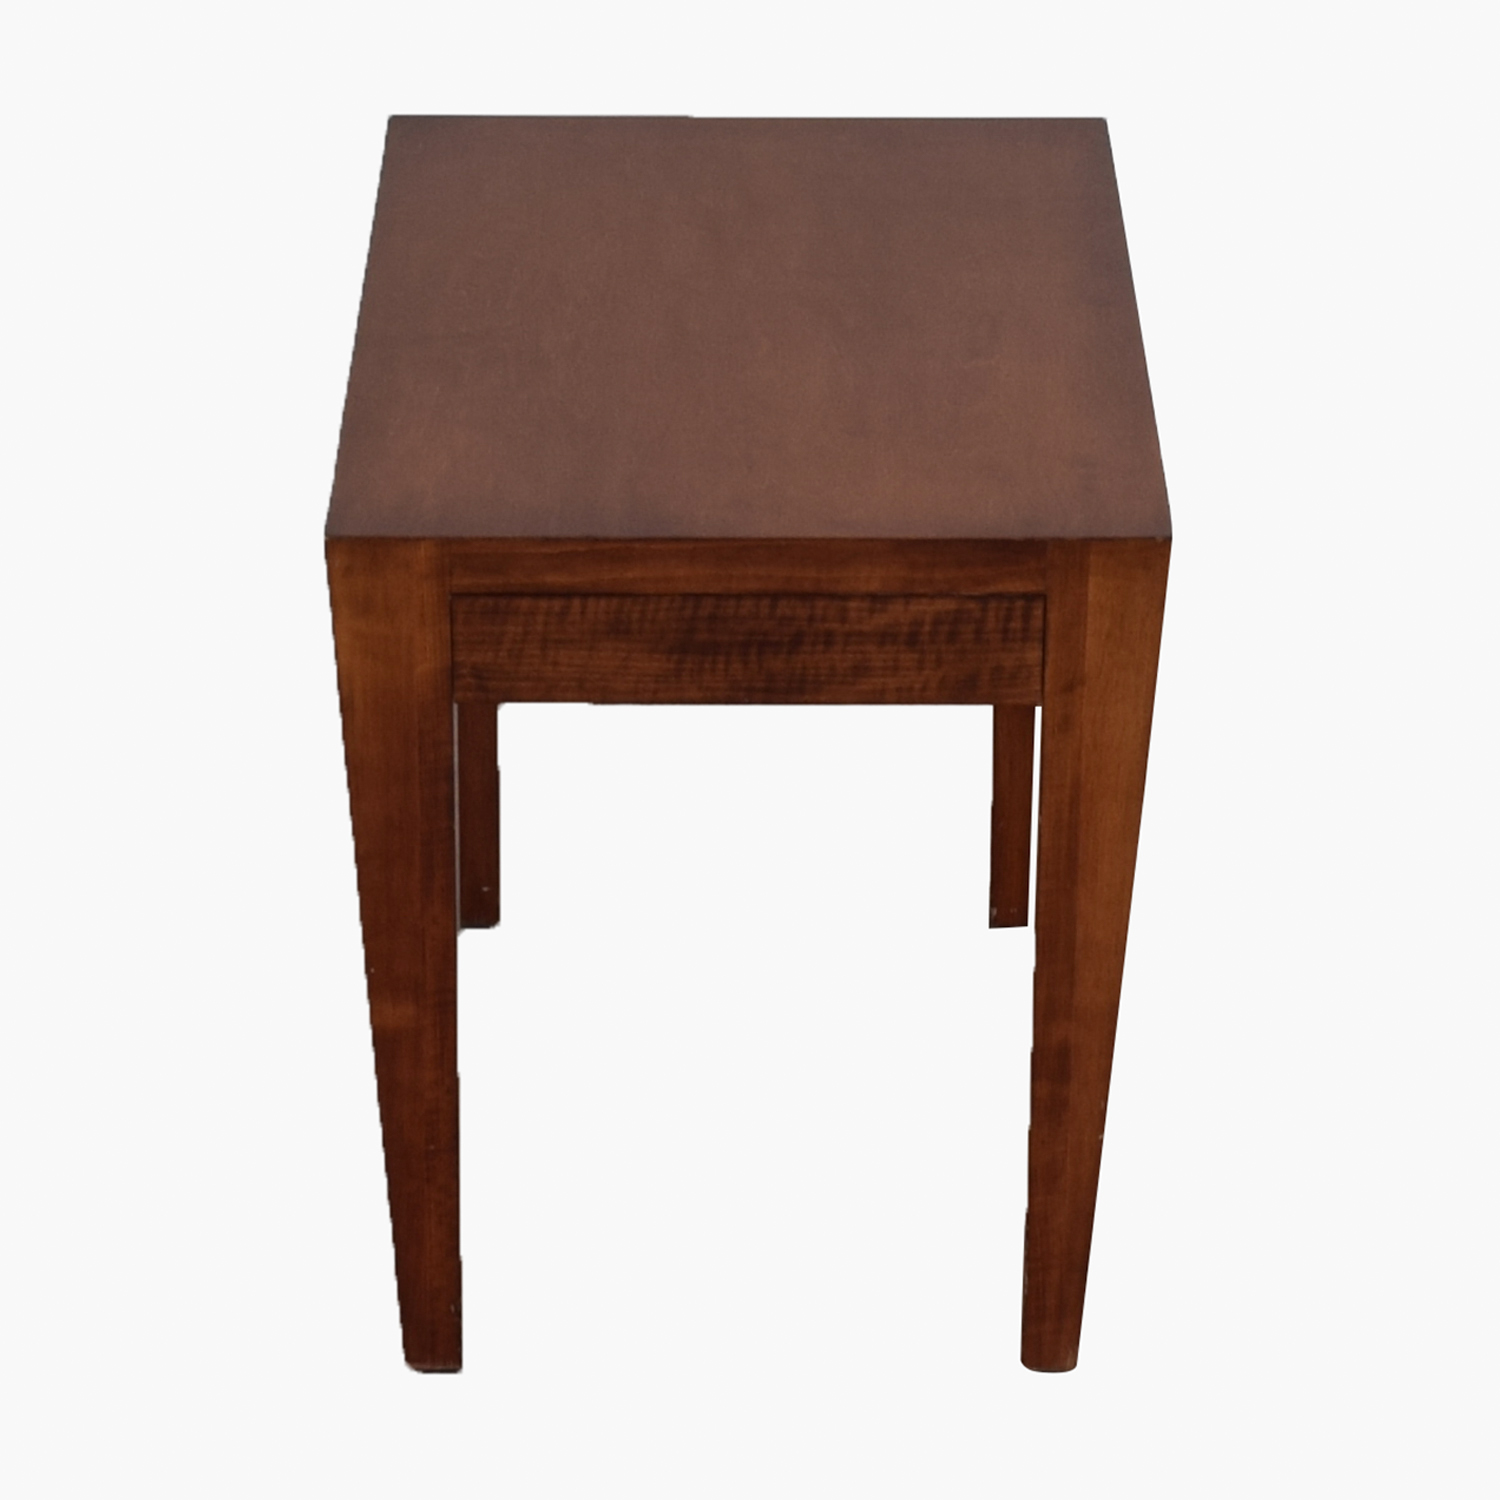 off furniture masters single drawer end table used tables coupon dark wood nightstand with drawers coffee rustic row express minwax stain colors pine mitylite steel small black